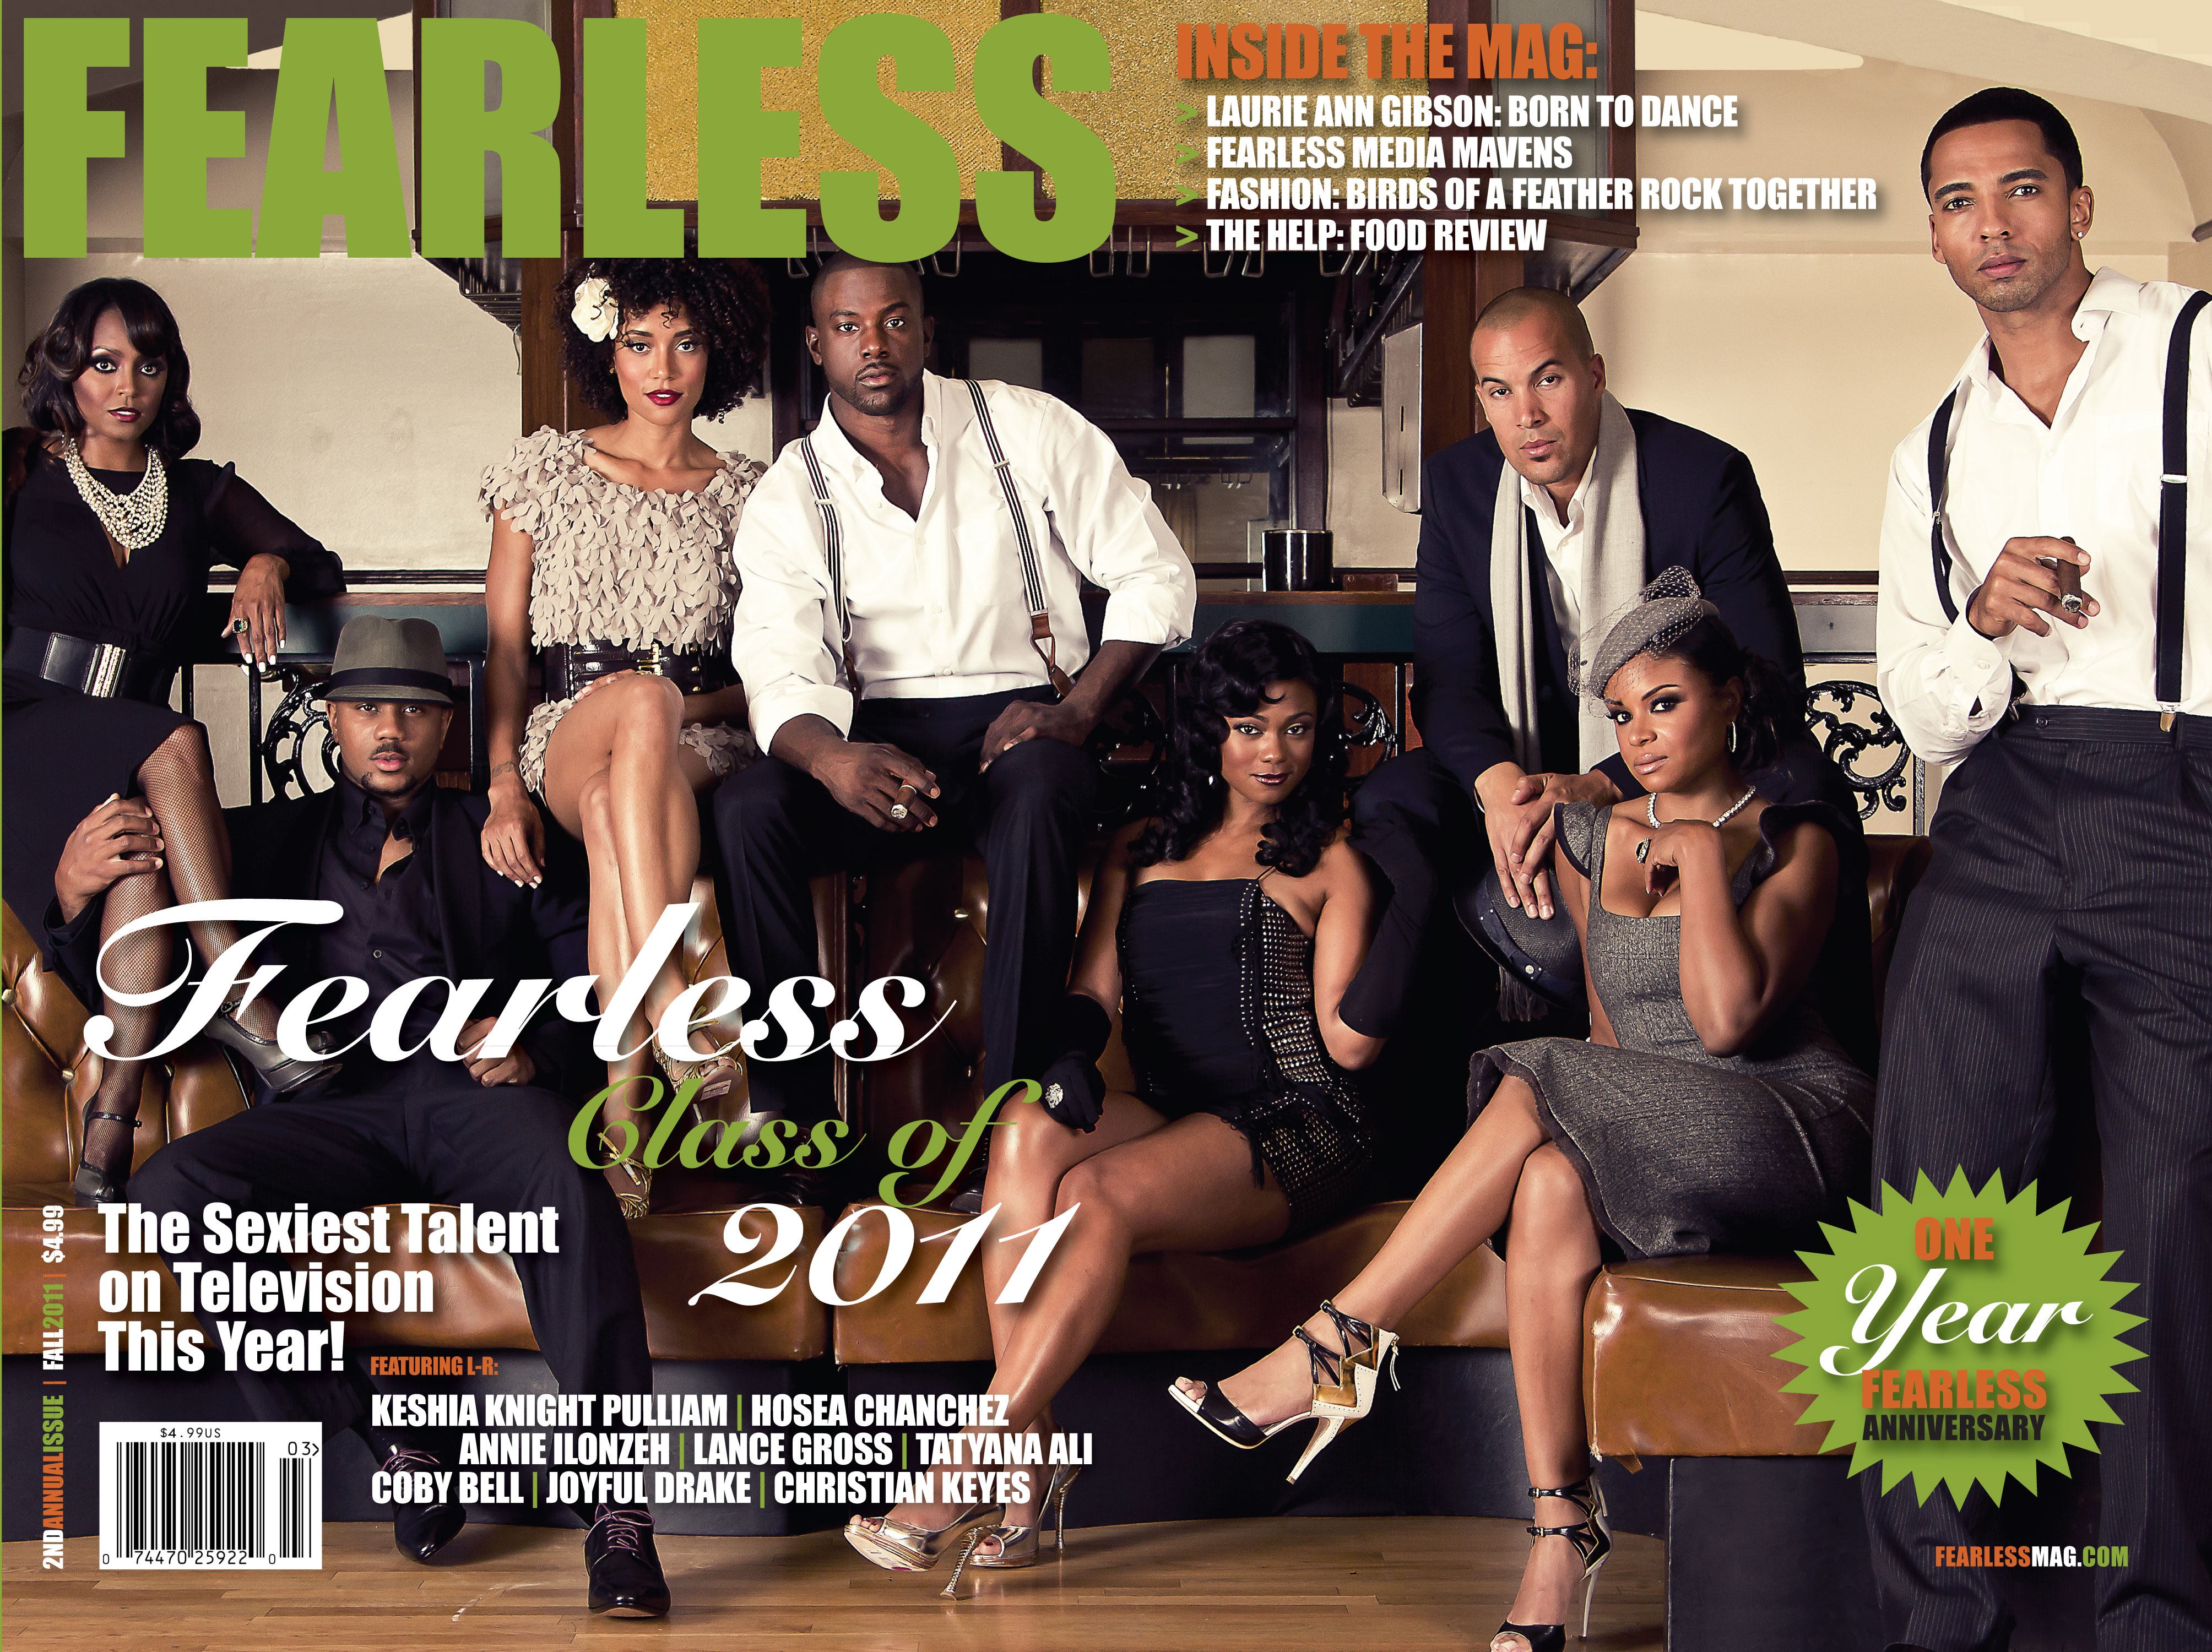 FEARLESS CLASS OF 2011 COVER